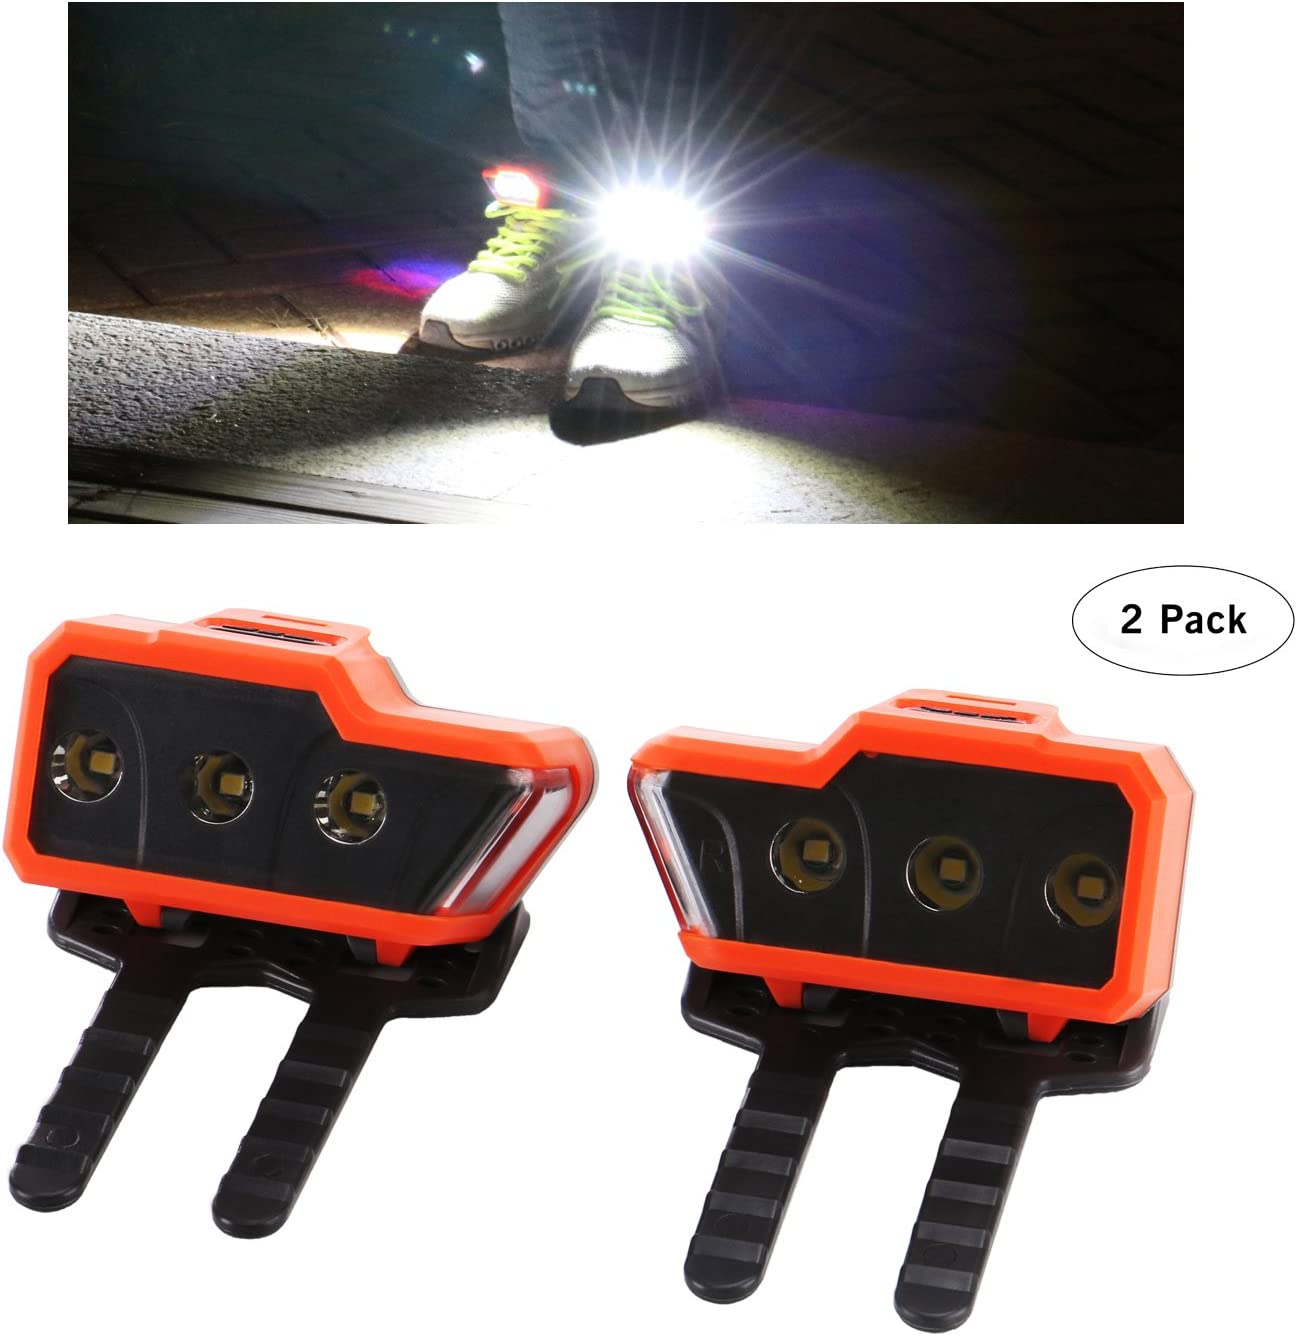 Greensyi LED Safety Lights (2pack) for Running Shoes with Three Bright Leds and One Side Warning light, Good for Night Running, Walking, Hiking, Cycling.